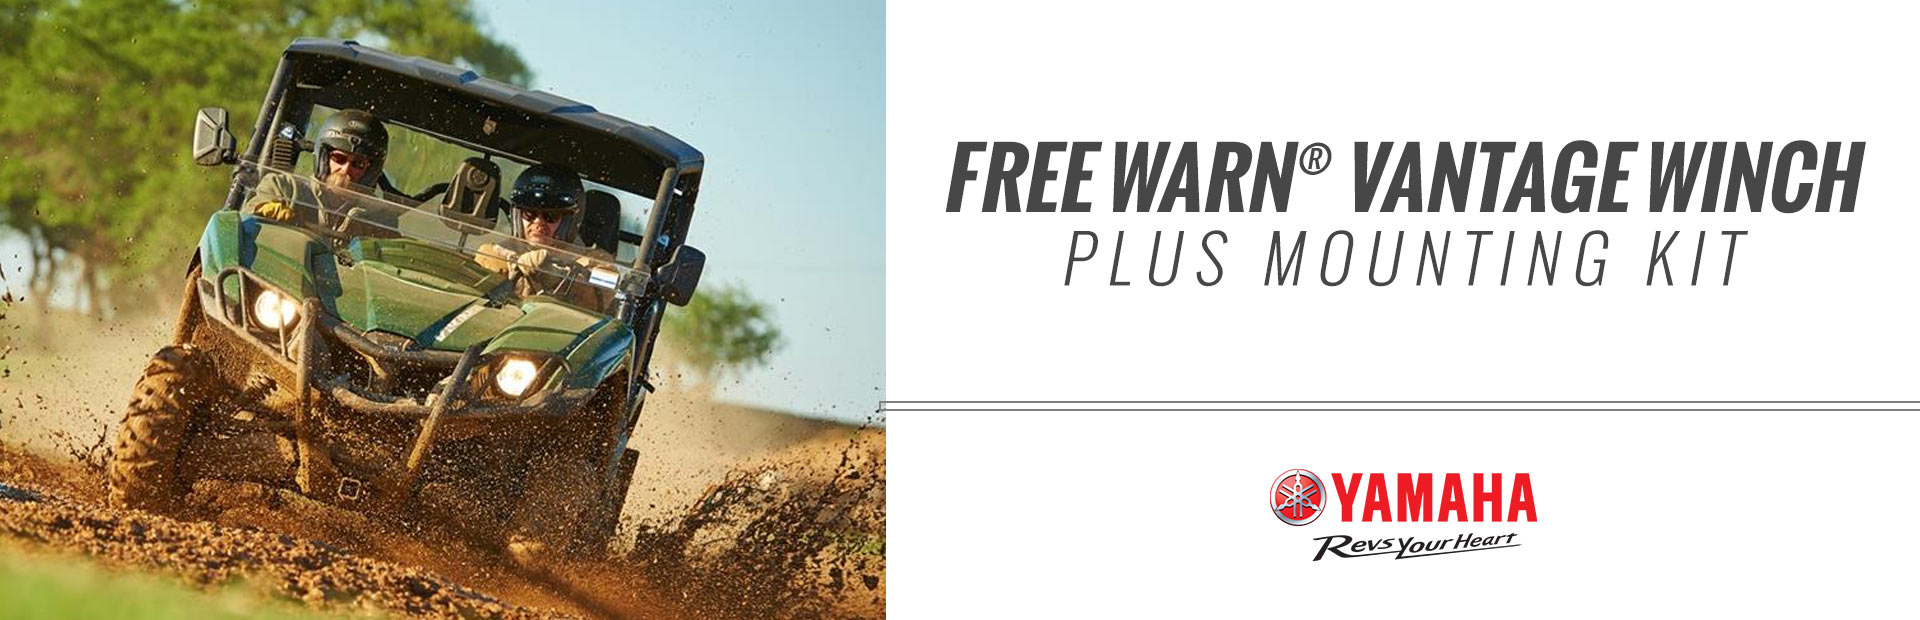 Free WARN® Vantage Winch Plus Mounting Kit